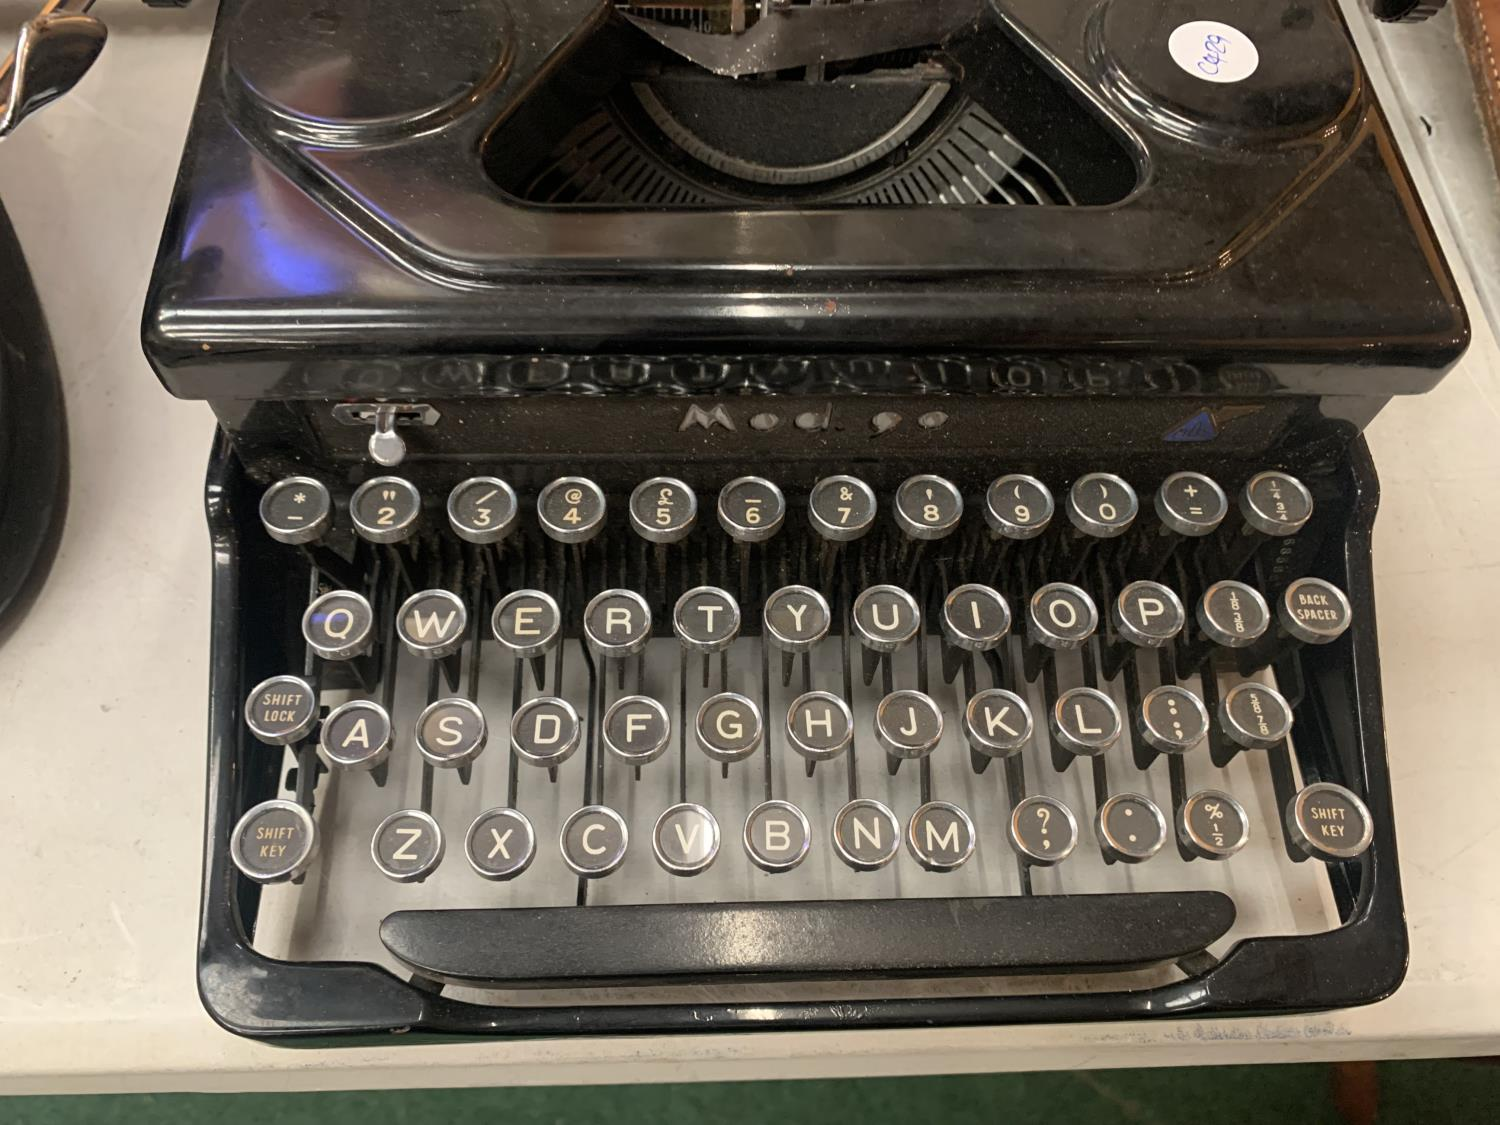 AN 'EVEREST' MADE IN ITALY VINTAGE PORTABLE TYPEWRITER MOD 90 - Image 2 of 3